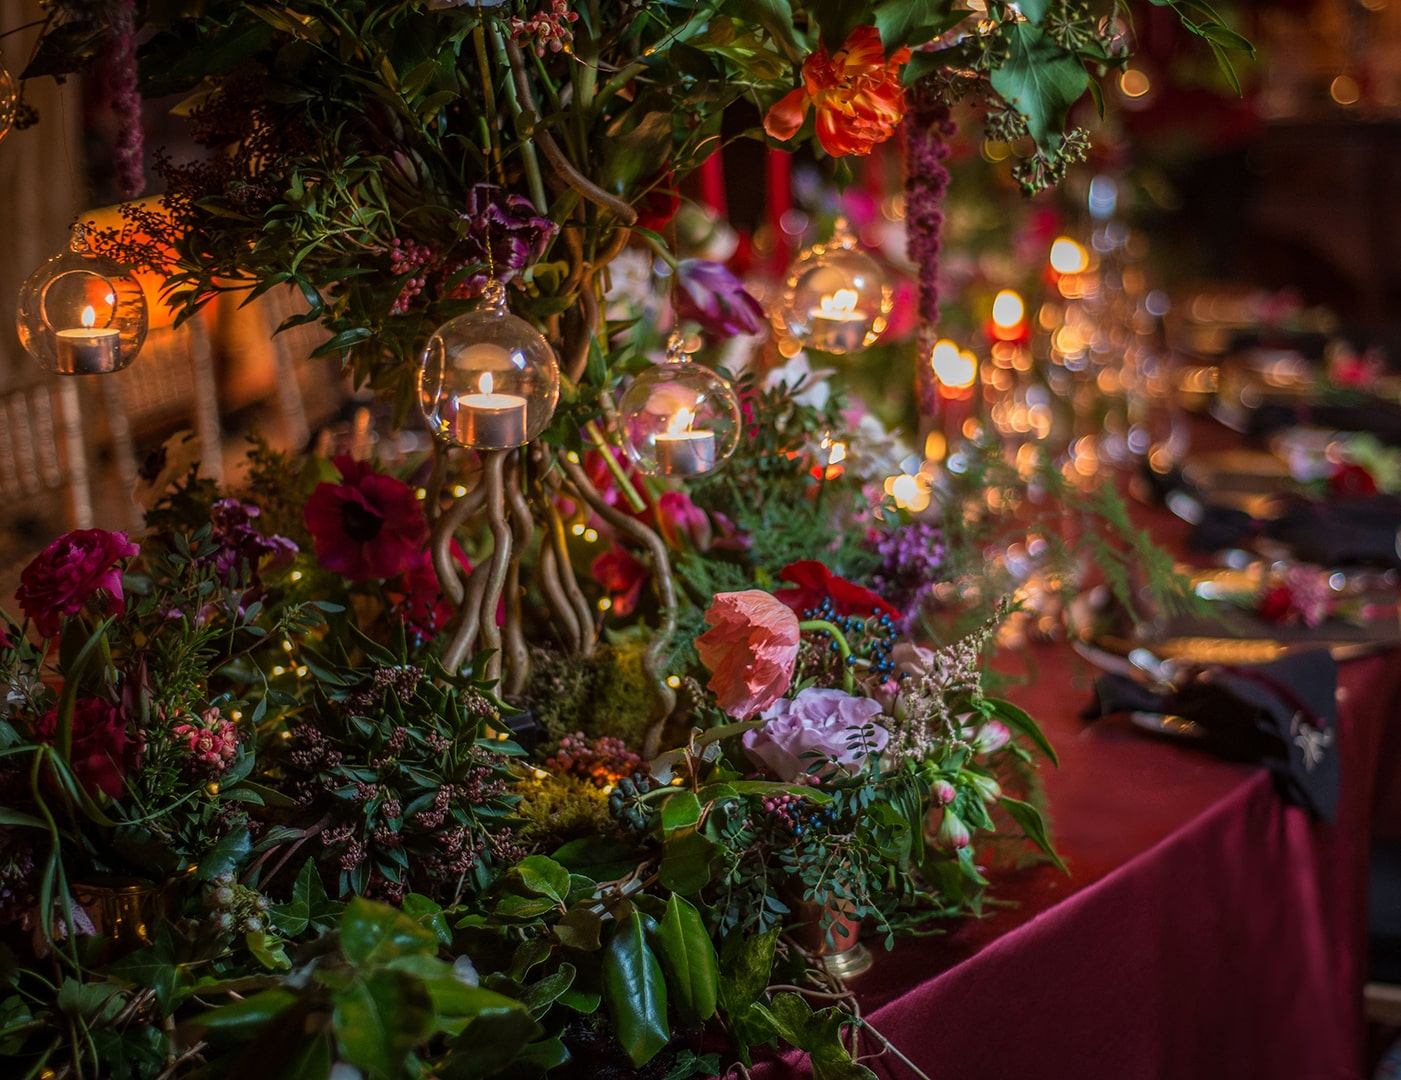 Christmas table setting, Christmas table, Christmas decorations, Destination Wedding Ireland, Event Planner in Ireland, Party Planner, Olivia Buckley International